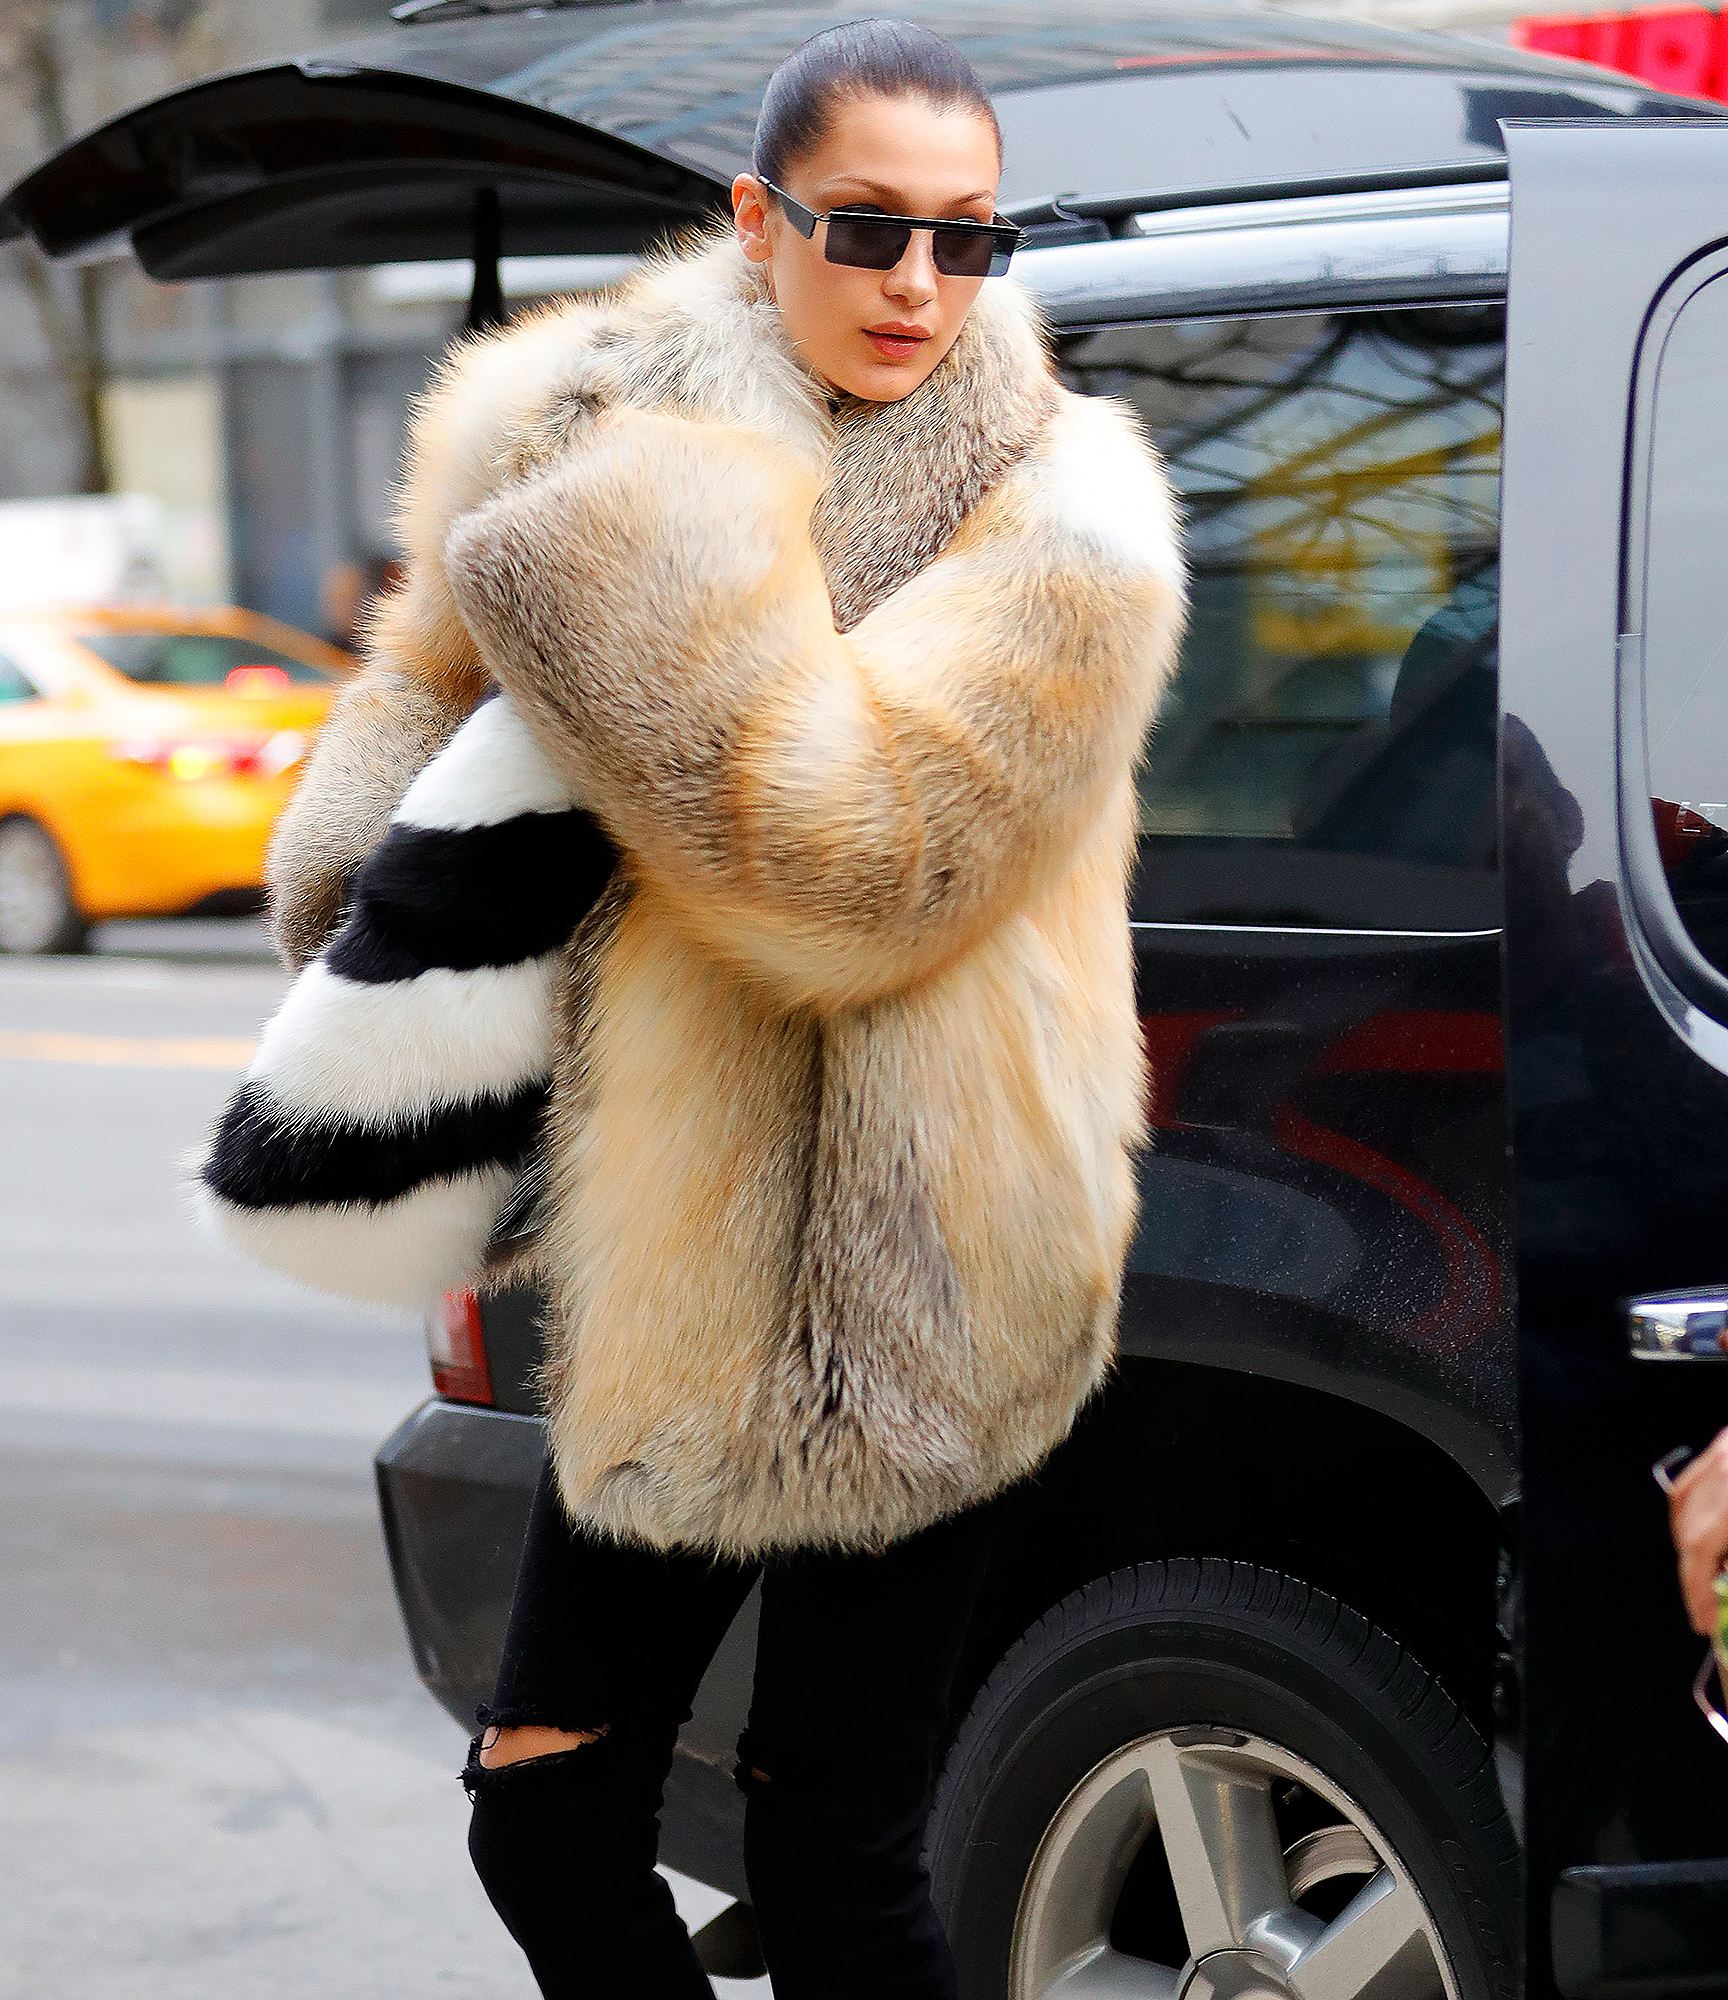 Bella Hadid wears fur when out and about in New York